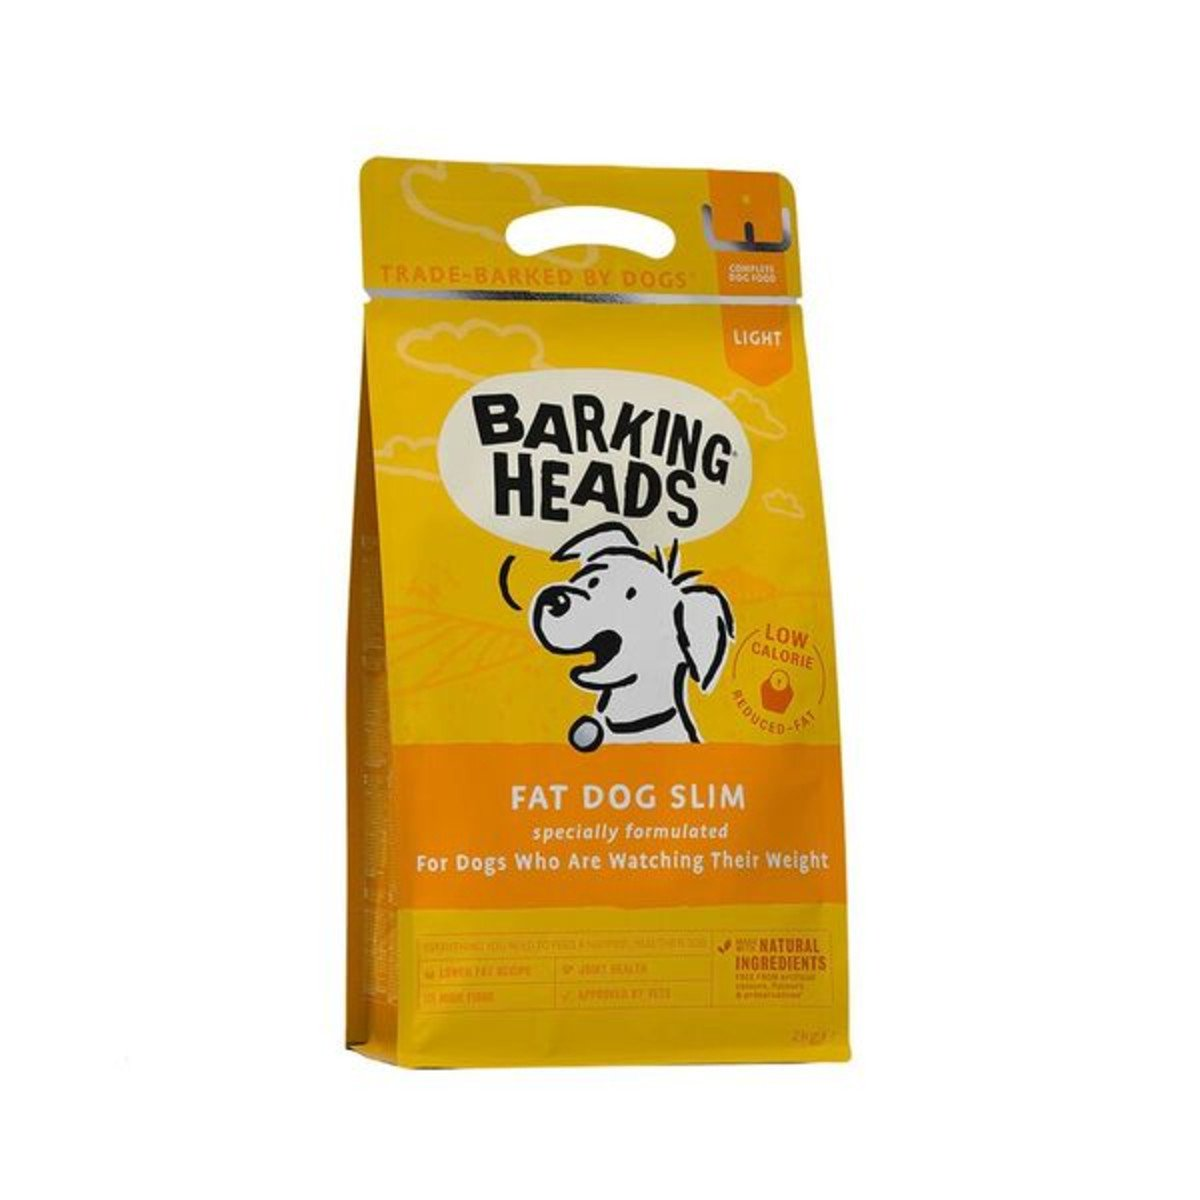 Barking Heads Fat Dog Slim Adult Light Rice & Chicken Dry Dog Food